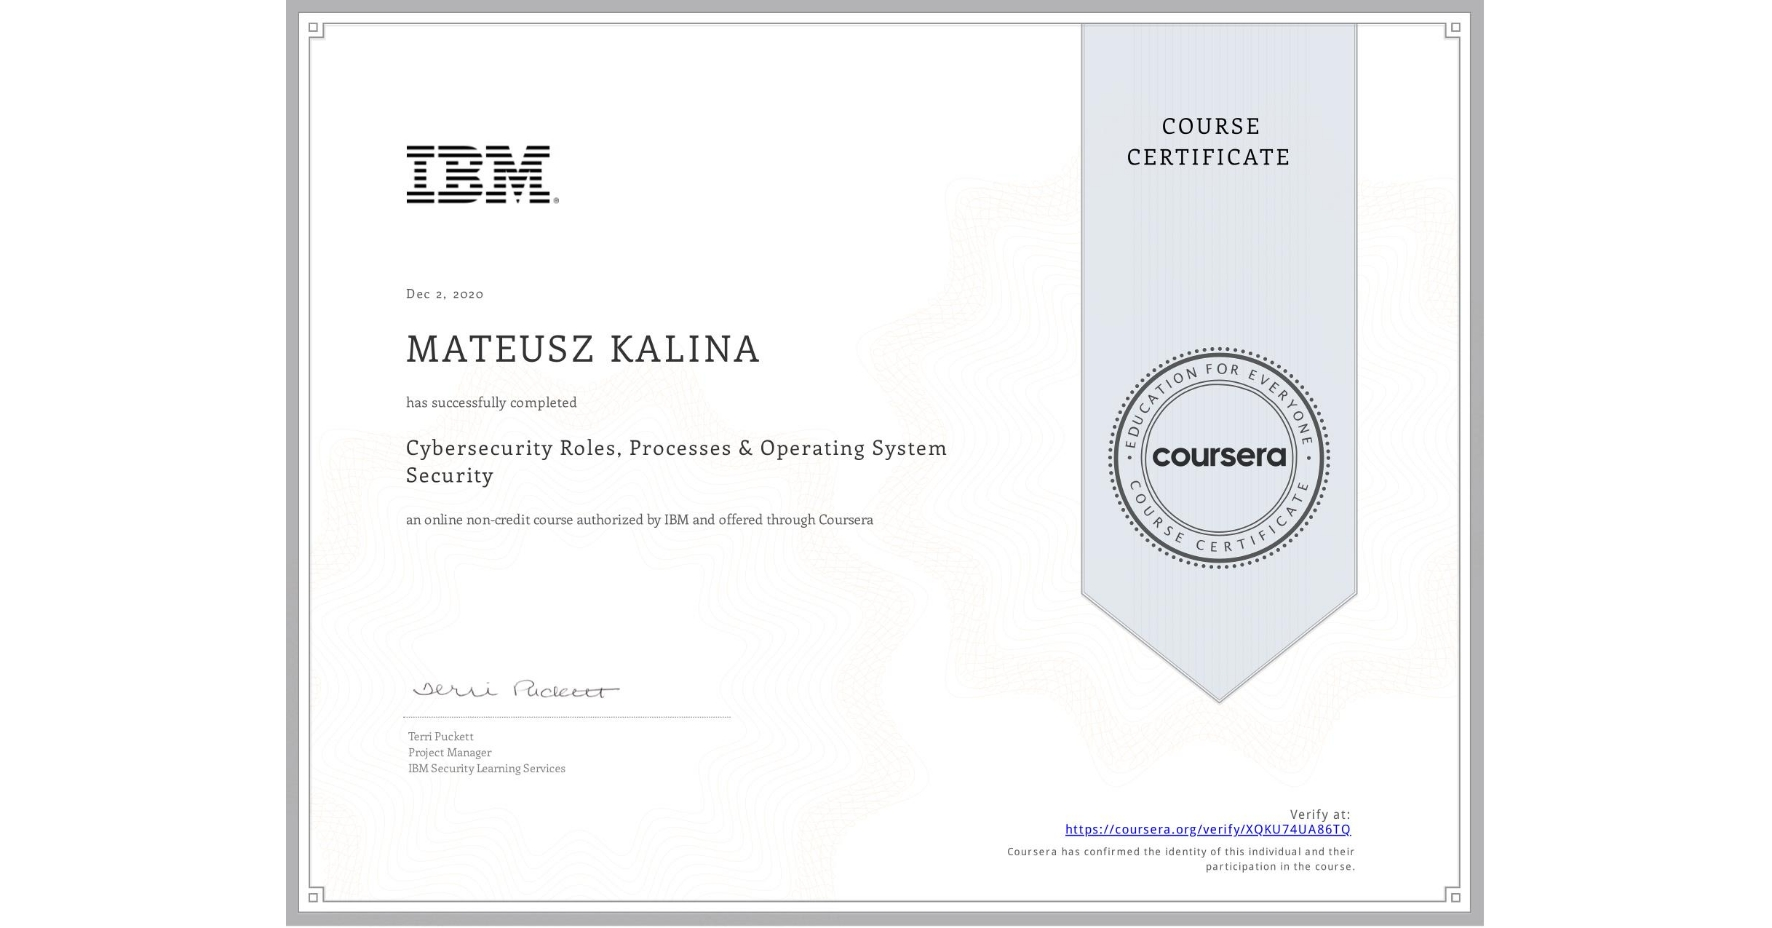 View certificate for MATEUSZ KALINA, Cybersecurity Roles, Processes & Operating System Security, an online non-credit course authorized by IBM and offered through Coursera